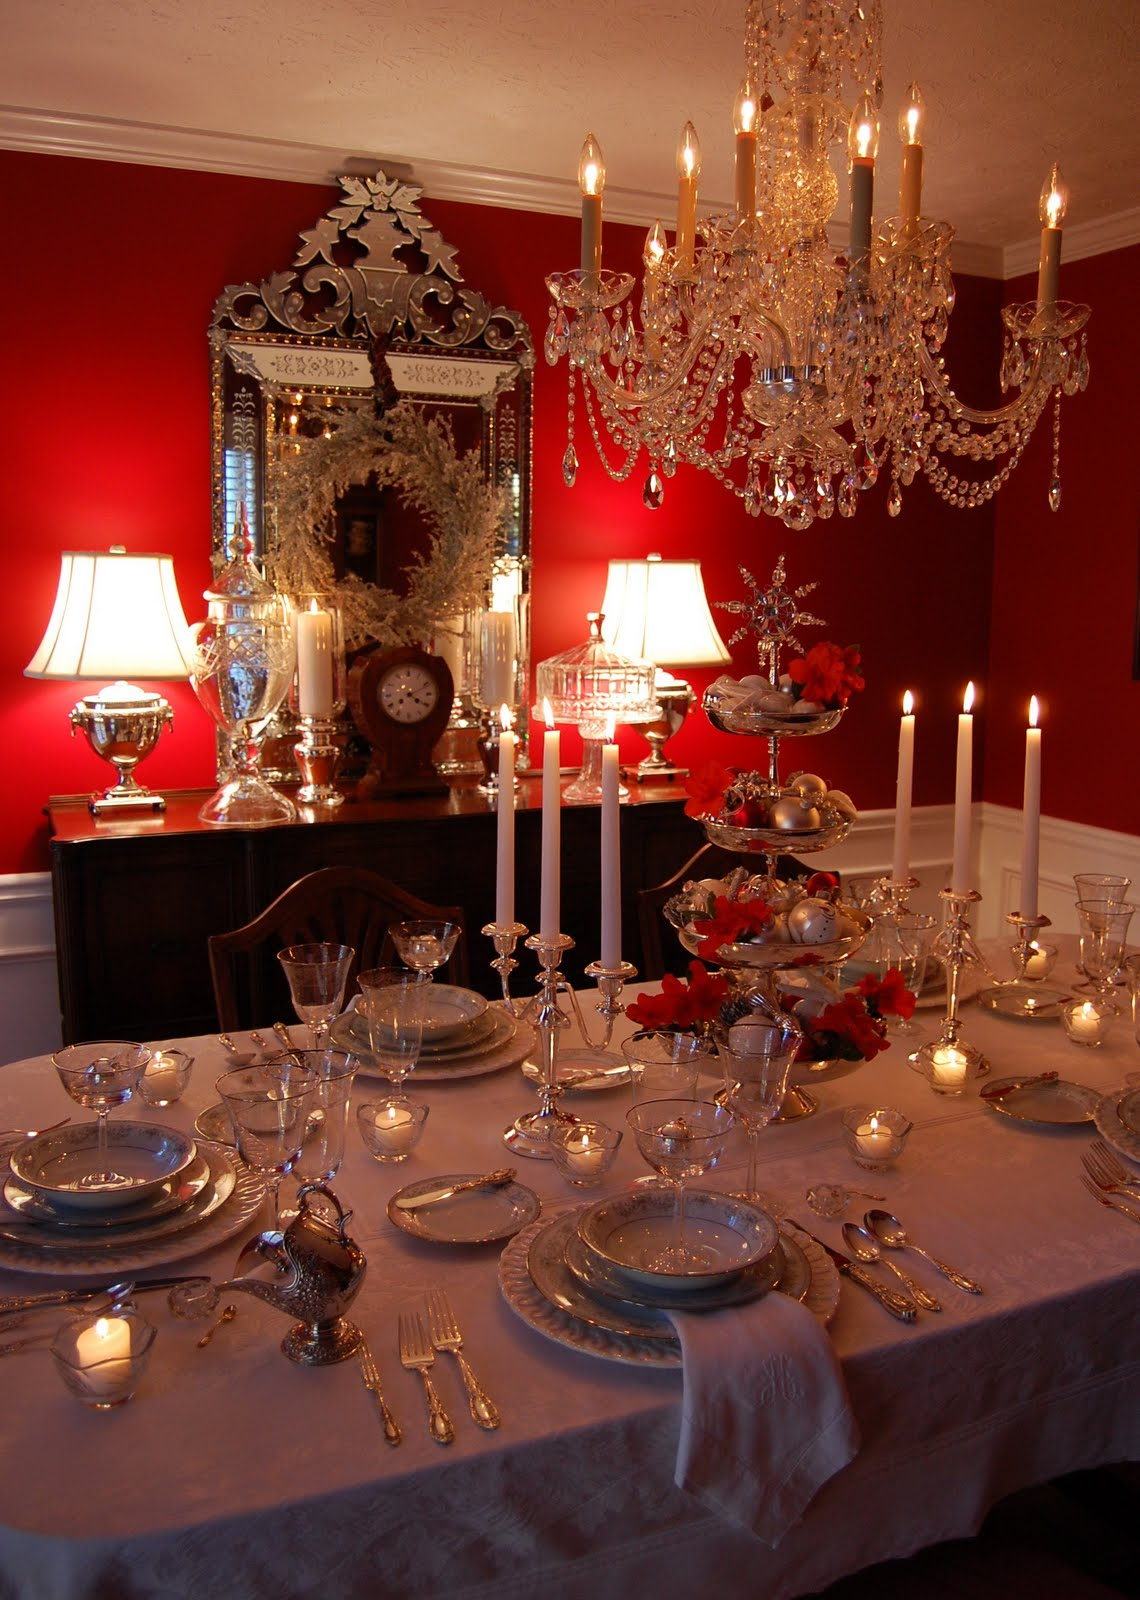 Christmas tablescape table setting with silver tiered